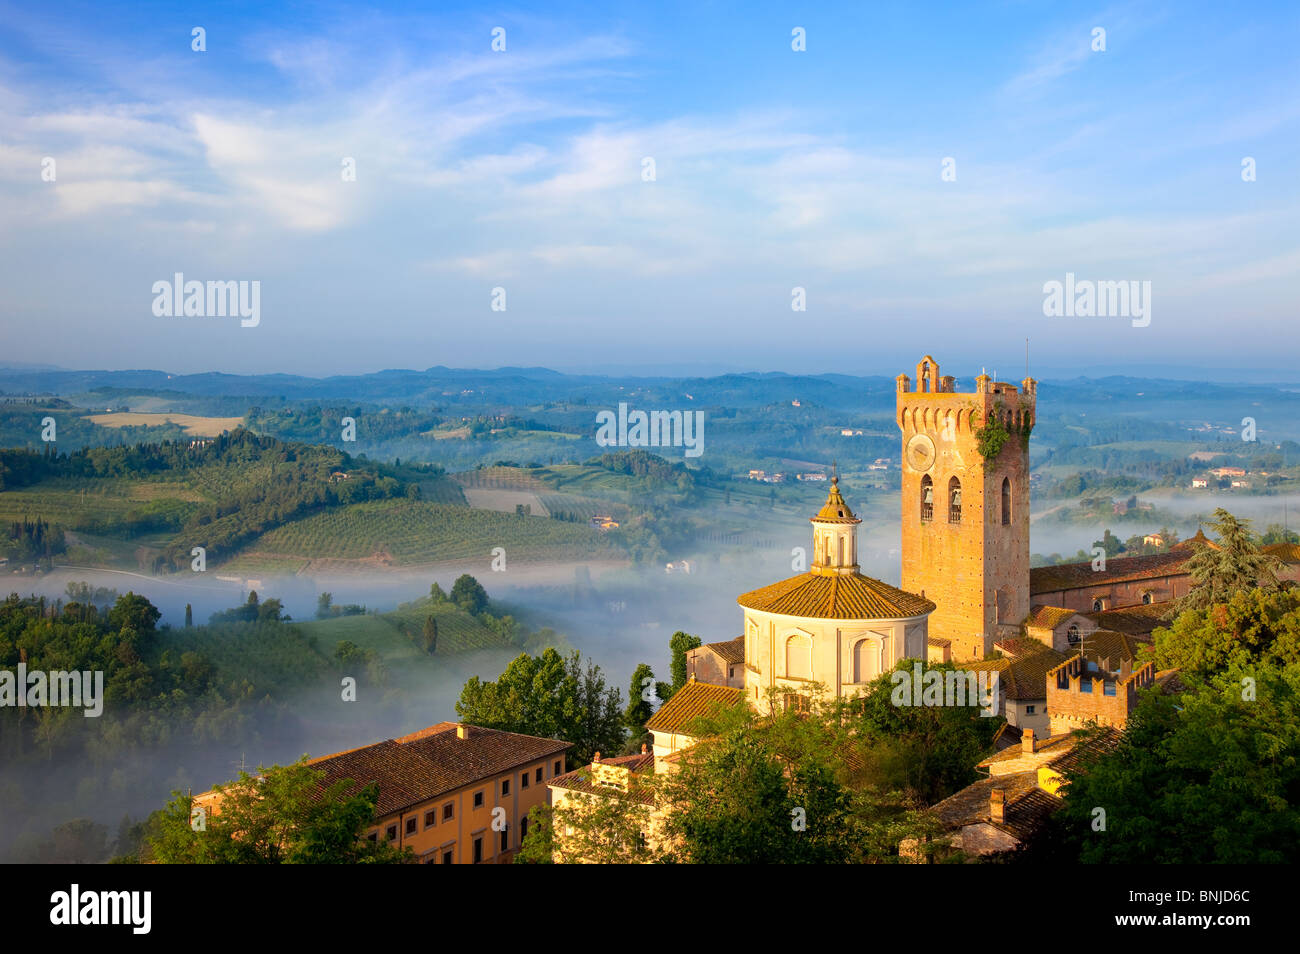 Morning mist laying in the valley below the duomo and medieval town of San Miniato, Tuscany Italy Stock Photo